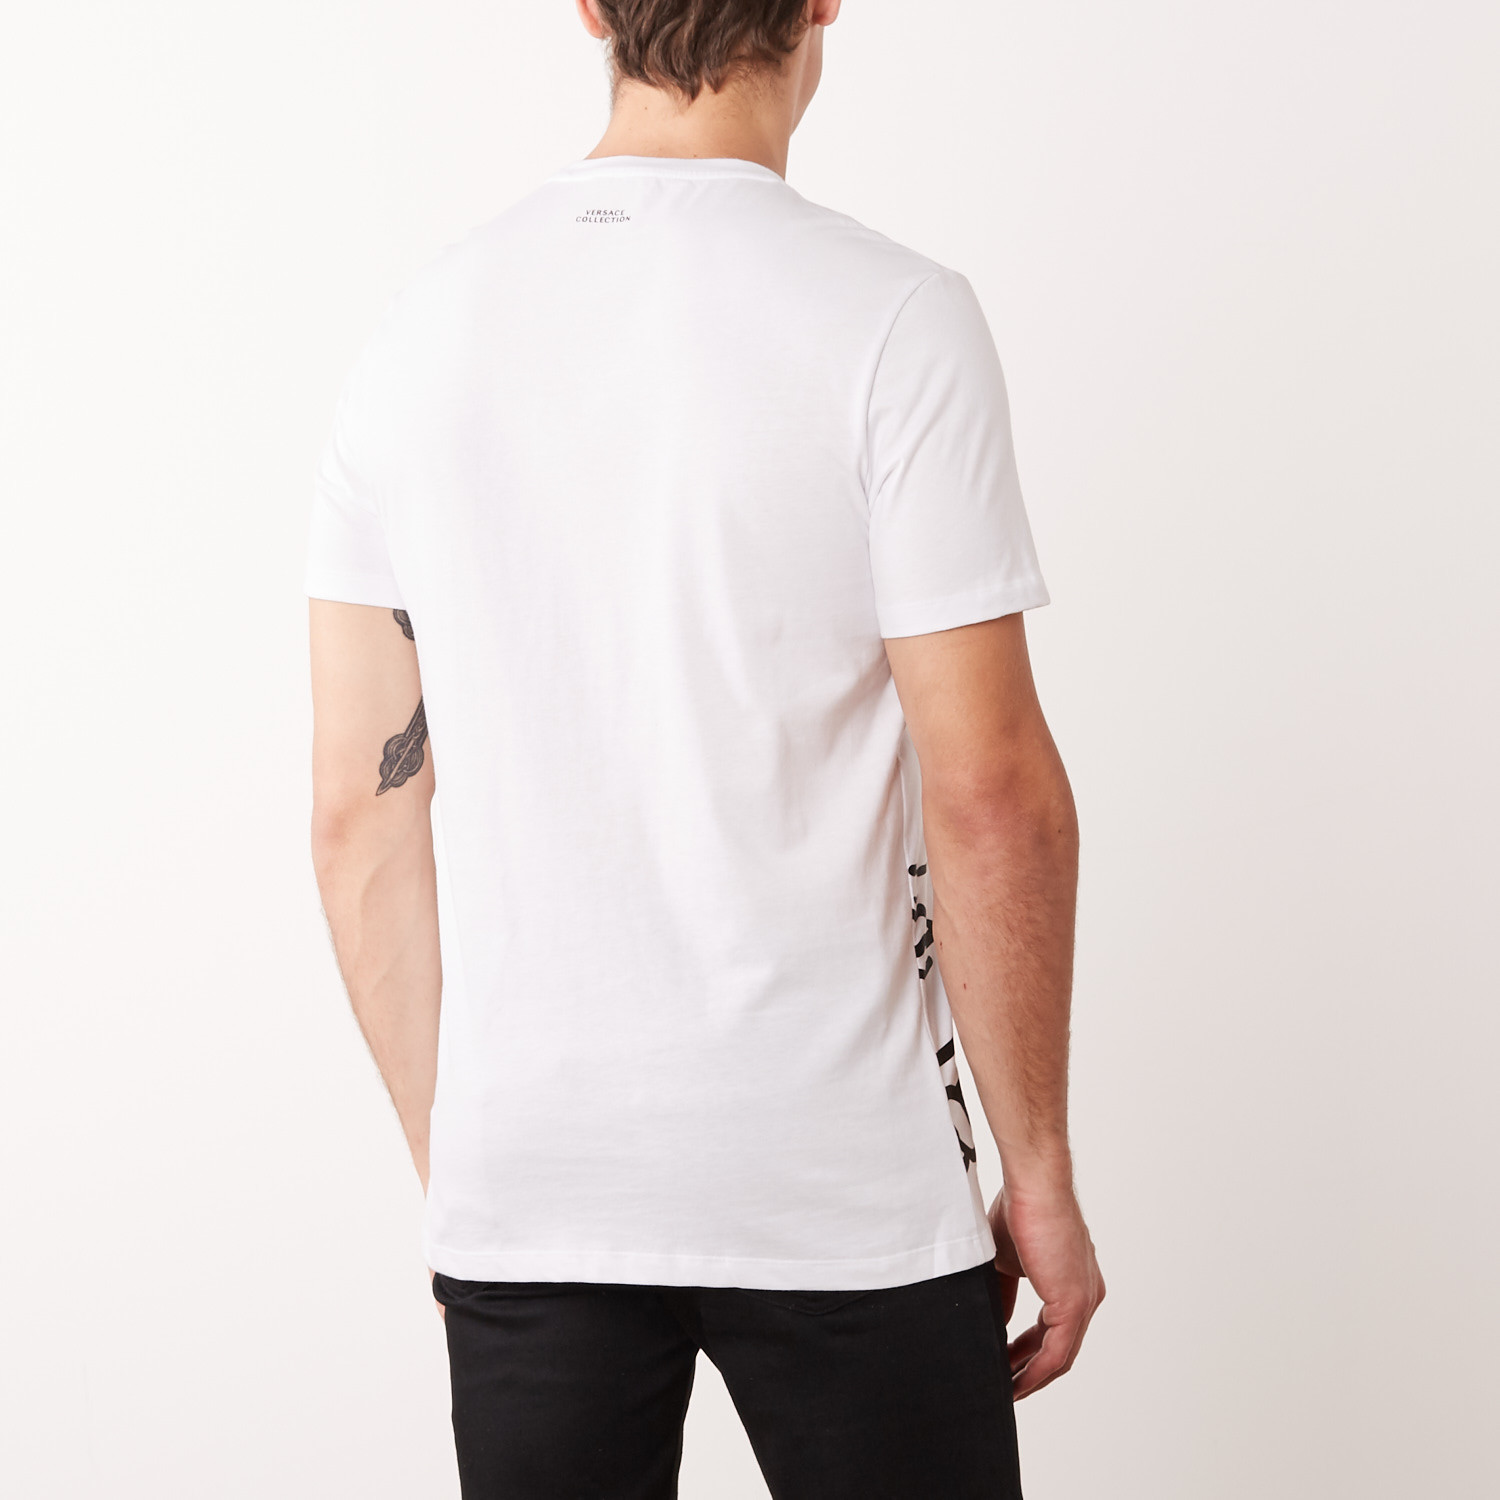 versace collection medusa head t shirt white m versace collection touch of modern. Black Bedroom Furniture Sets. Home Design Ideas